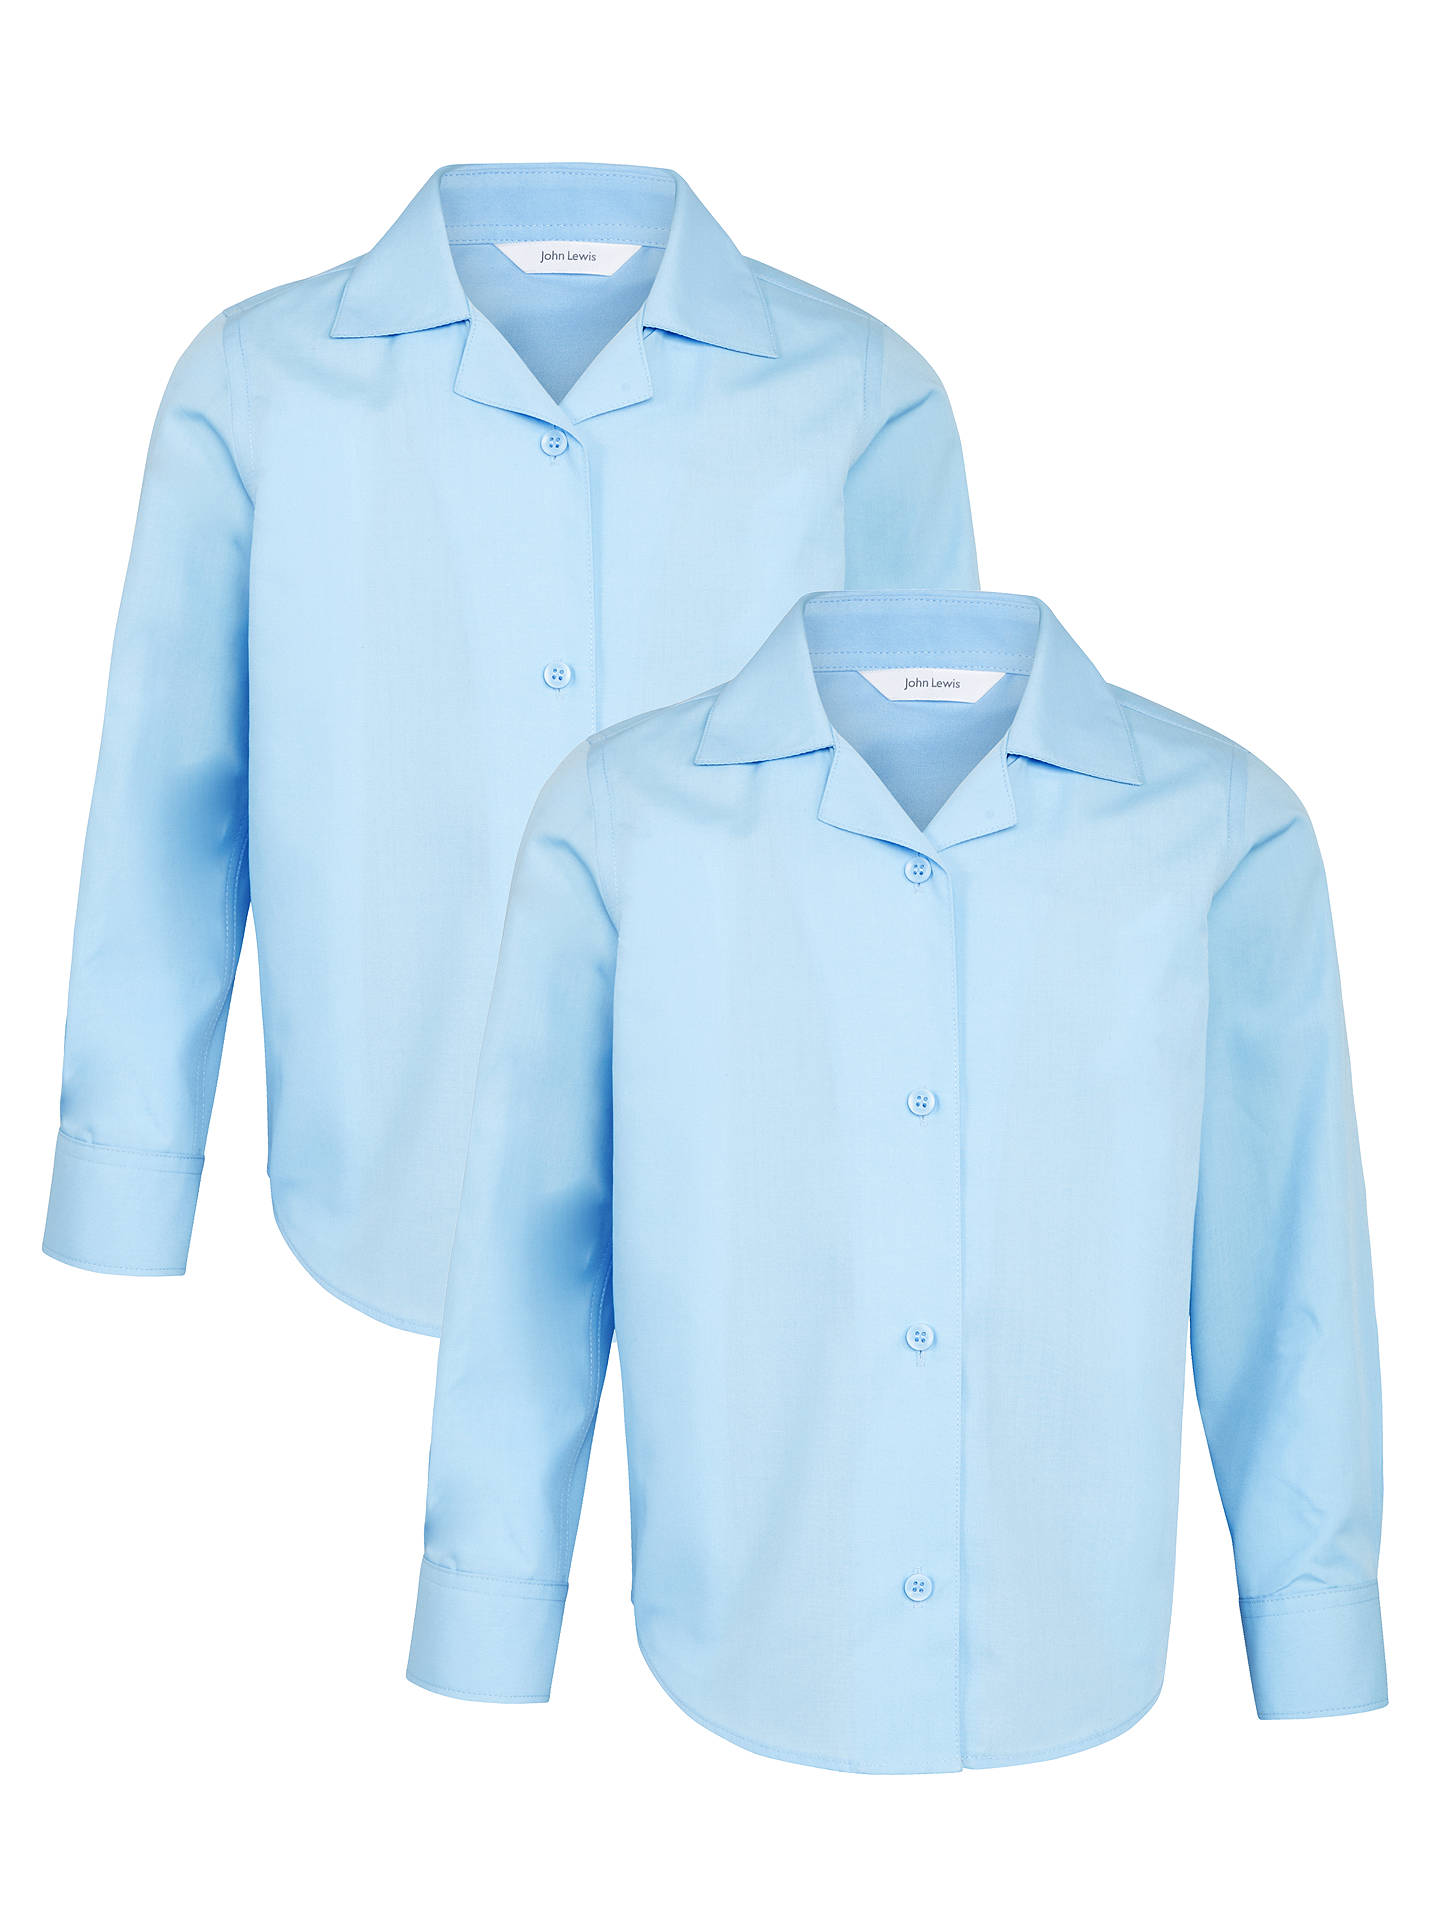 BuyJohn Lewis & Partners Girls' Open Neck School Blouse, Pack of 2, Blue, 4 years Online at johnlewis.com